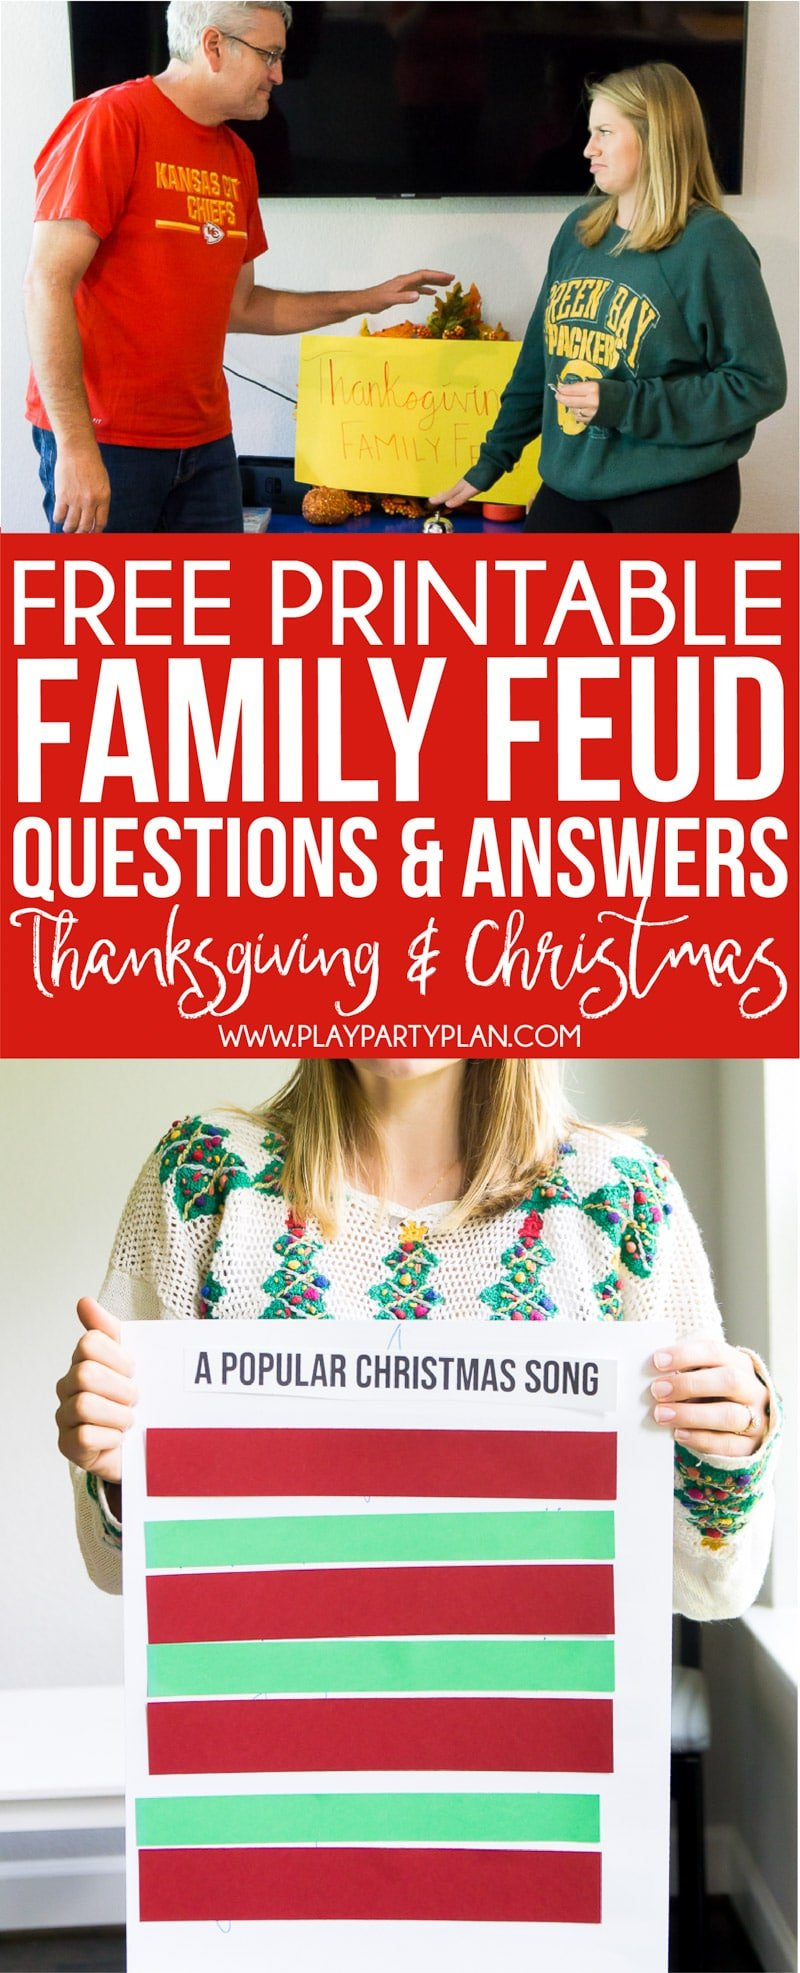 FREE Holiday Family Feud Game (Thanksgiving & Christmas